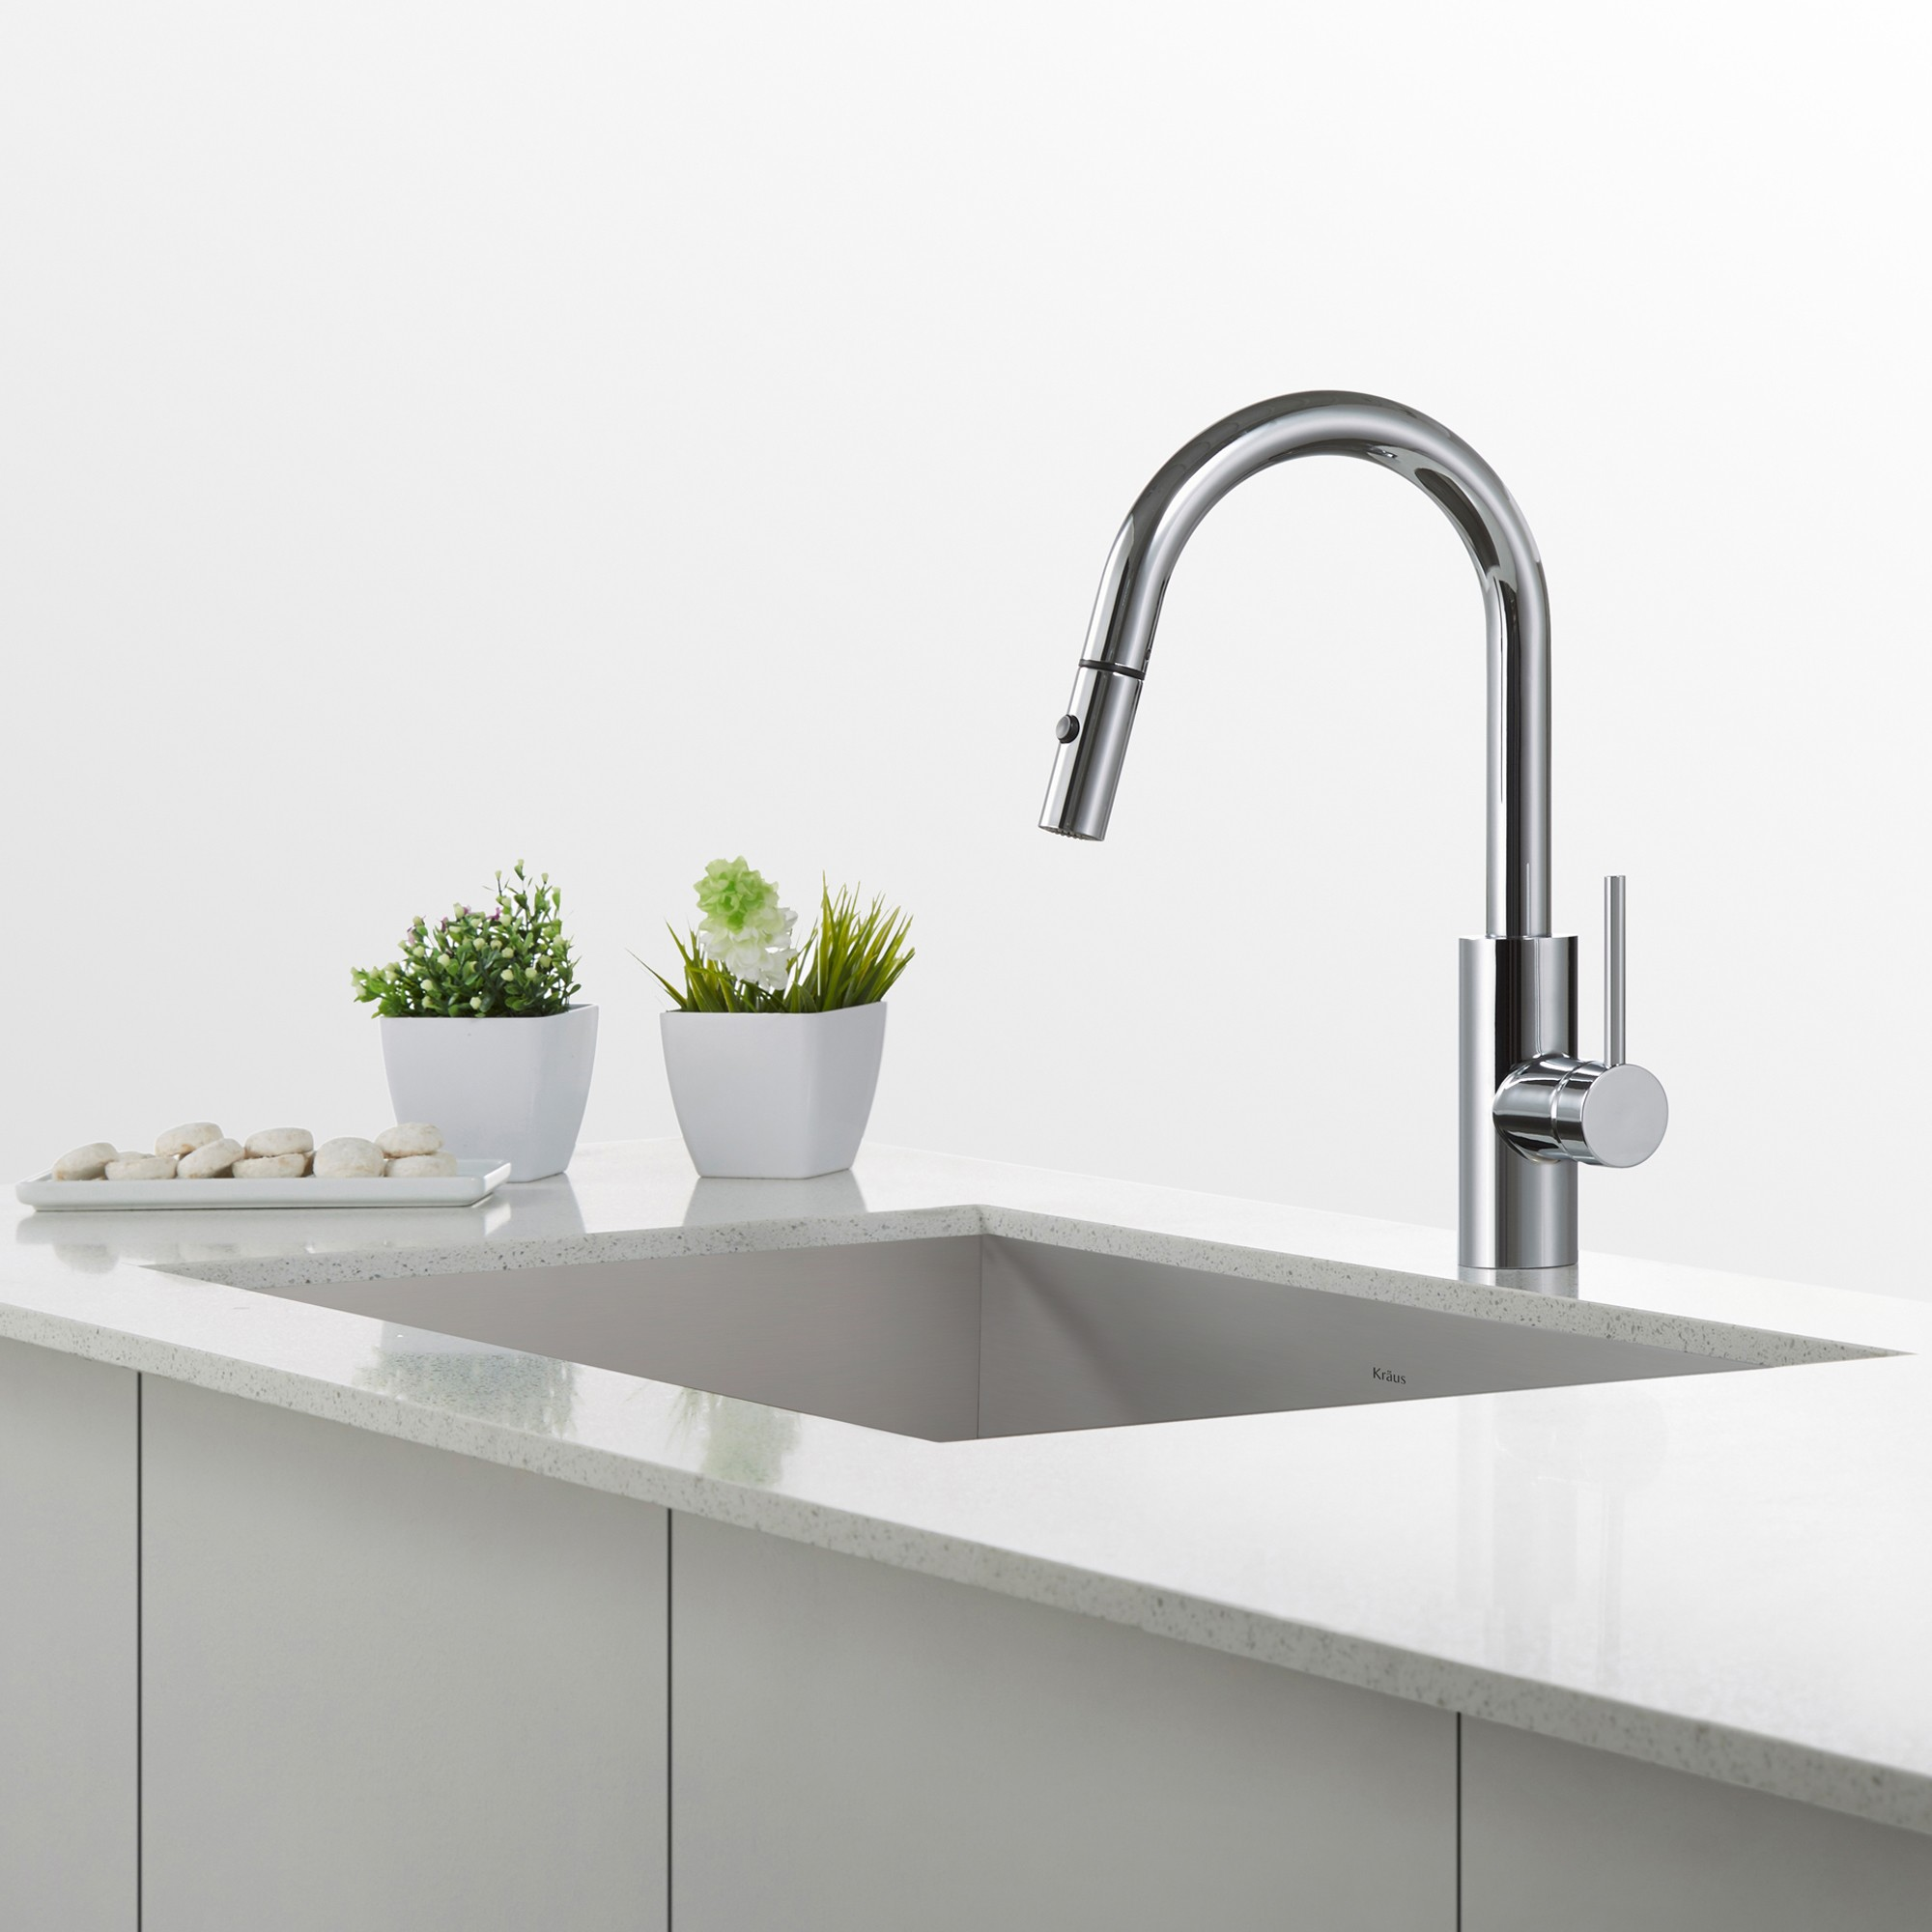 Vanity Best Kitchen Faucet Brands Of Brand For Your With Sink Ikea